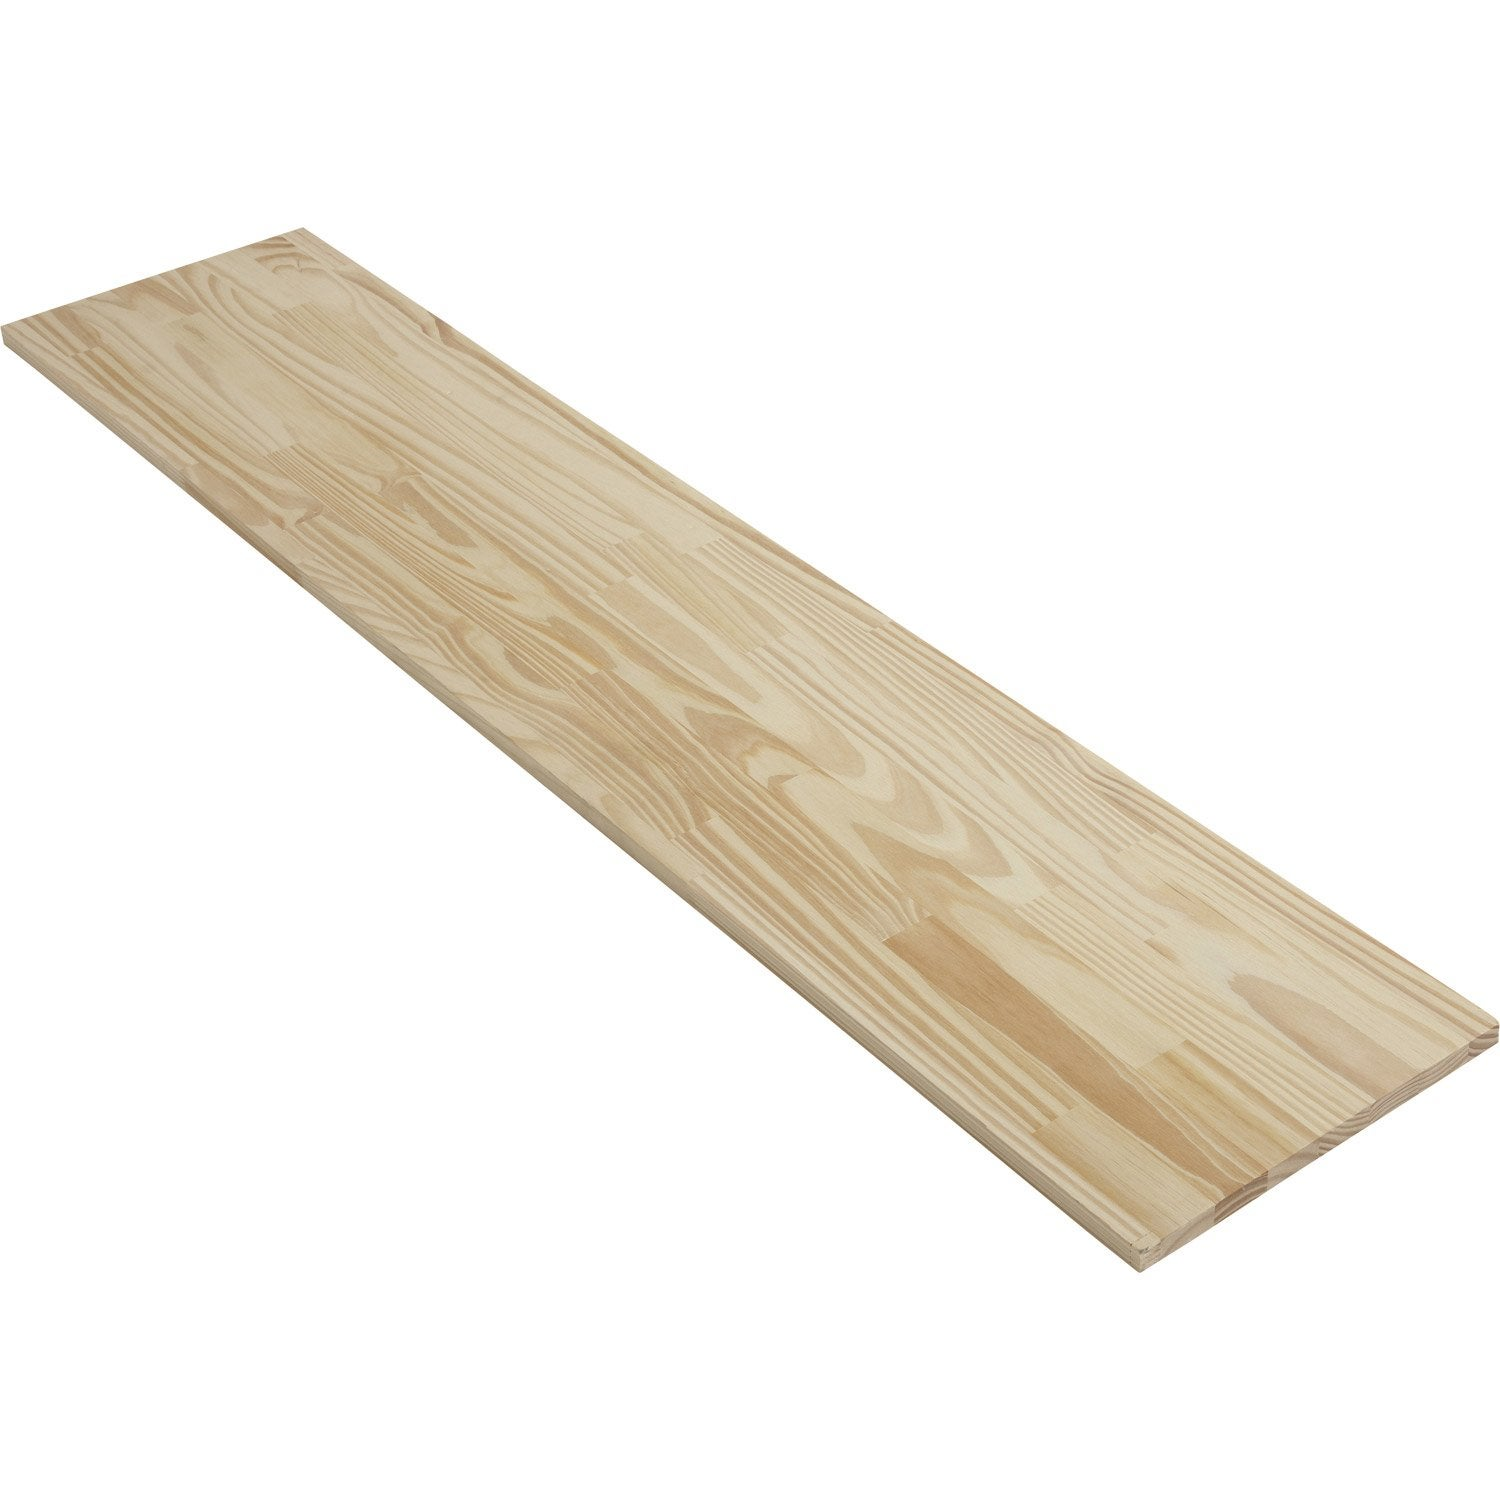 Tablette pin lamell coll solid x p leroy merlin - Leroy merlin planche bois ...